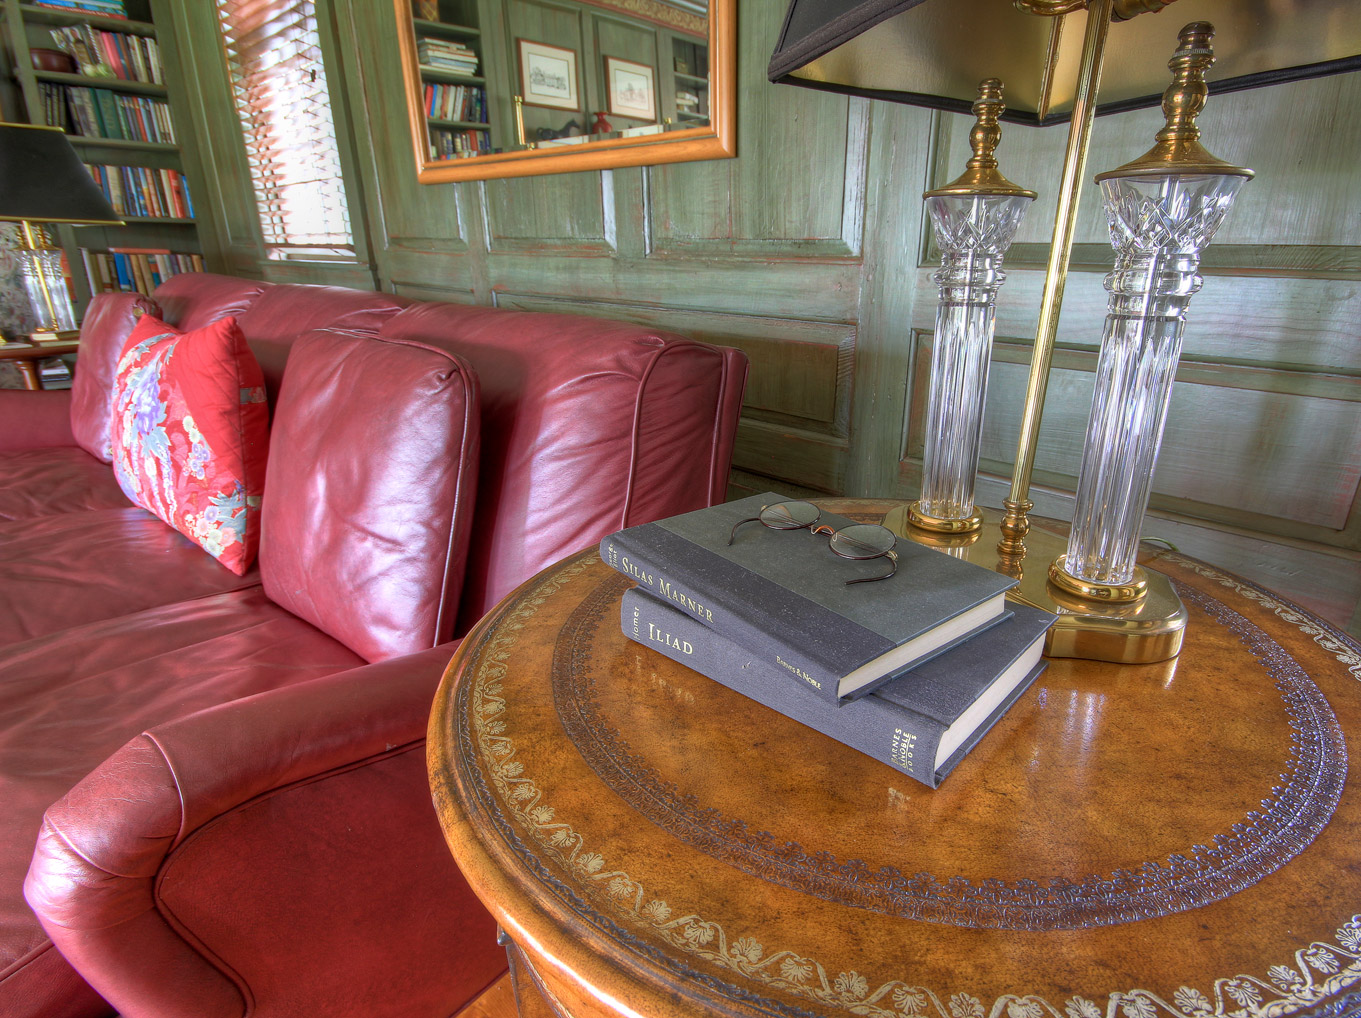 red leather sofa in combsberry library next to table with books and glasses